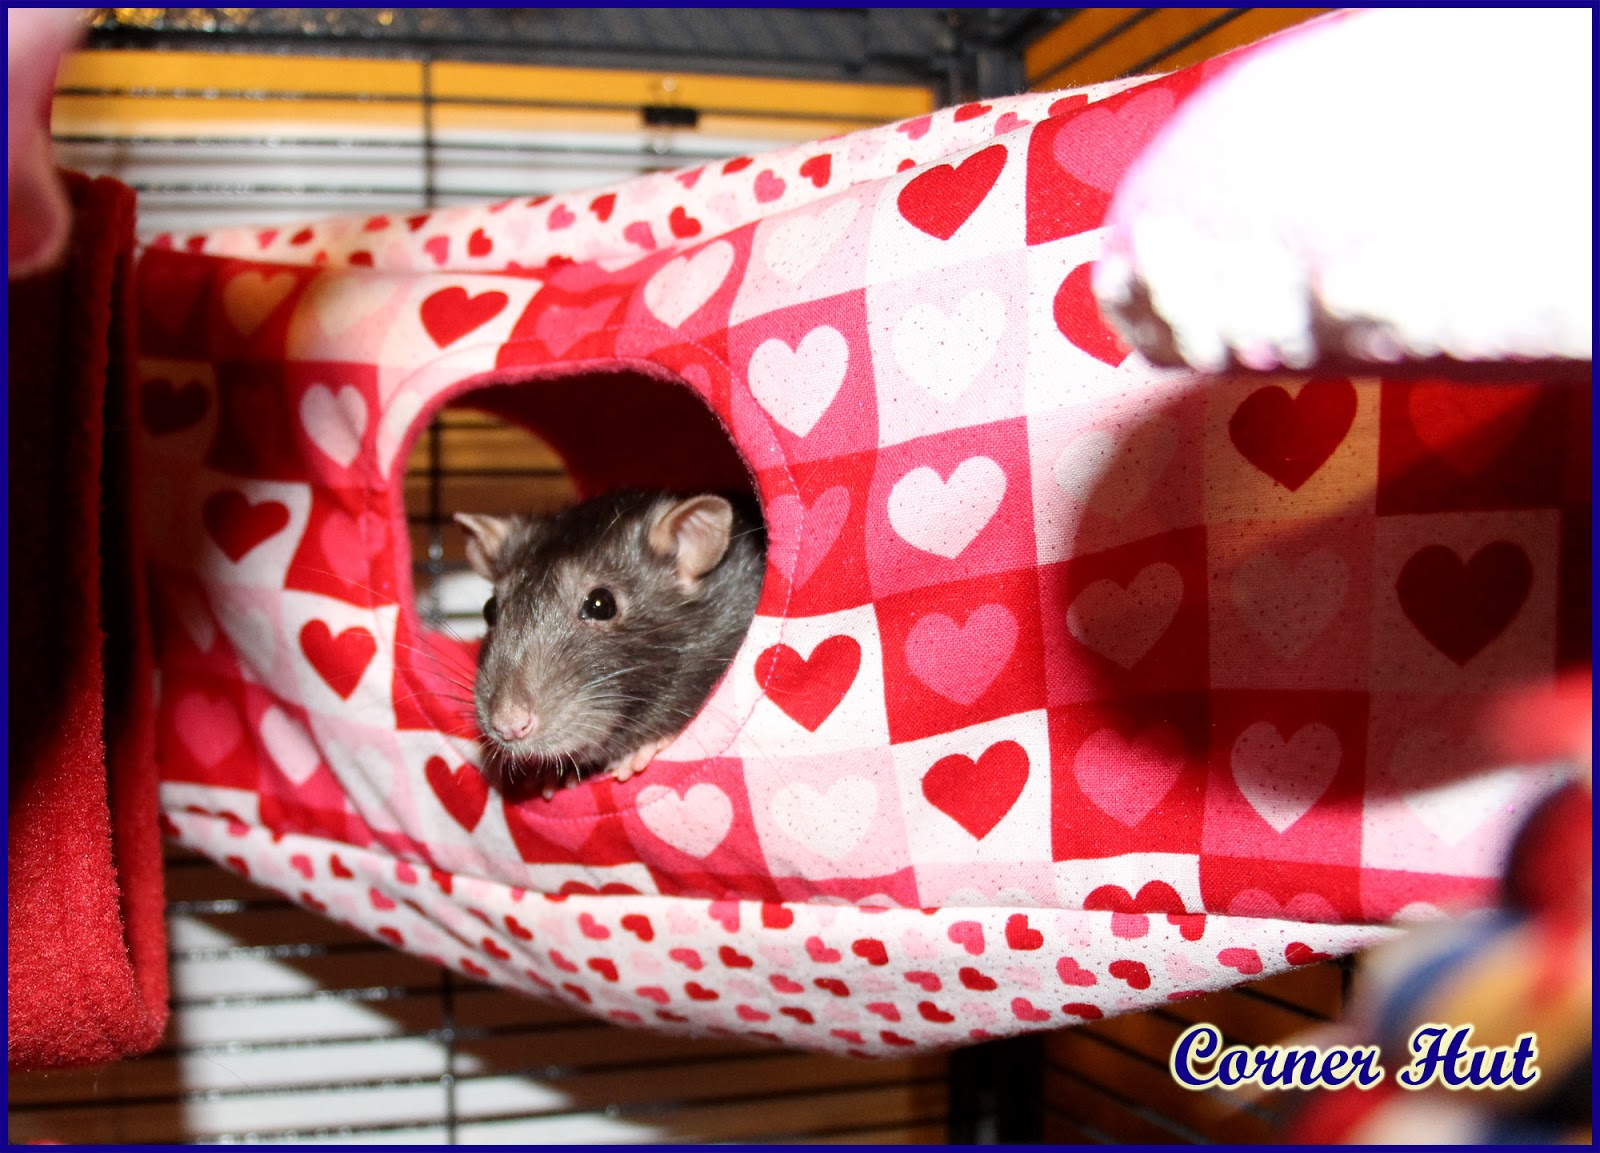 The Tutorials for Common Rat Hammocks and Accessories PDF file has been updated. The file now includes tutorials for the corner hut, which is similar to a ...